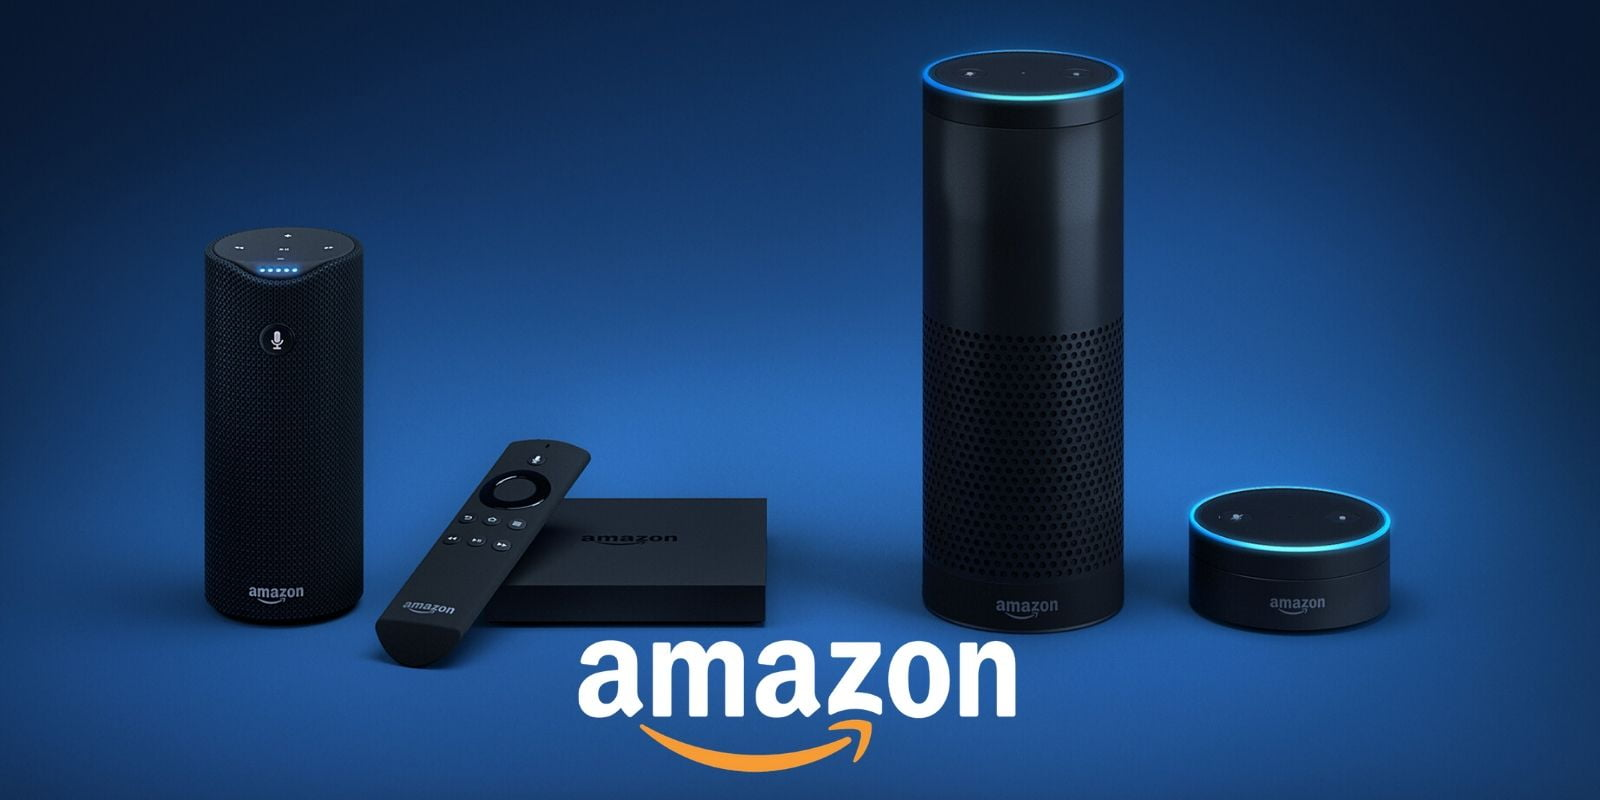 Amazon Echo products black friday deals